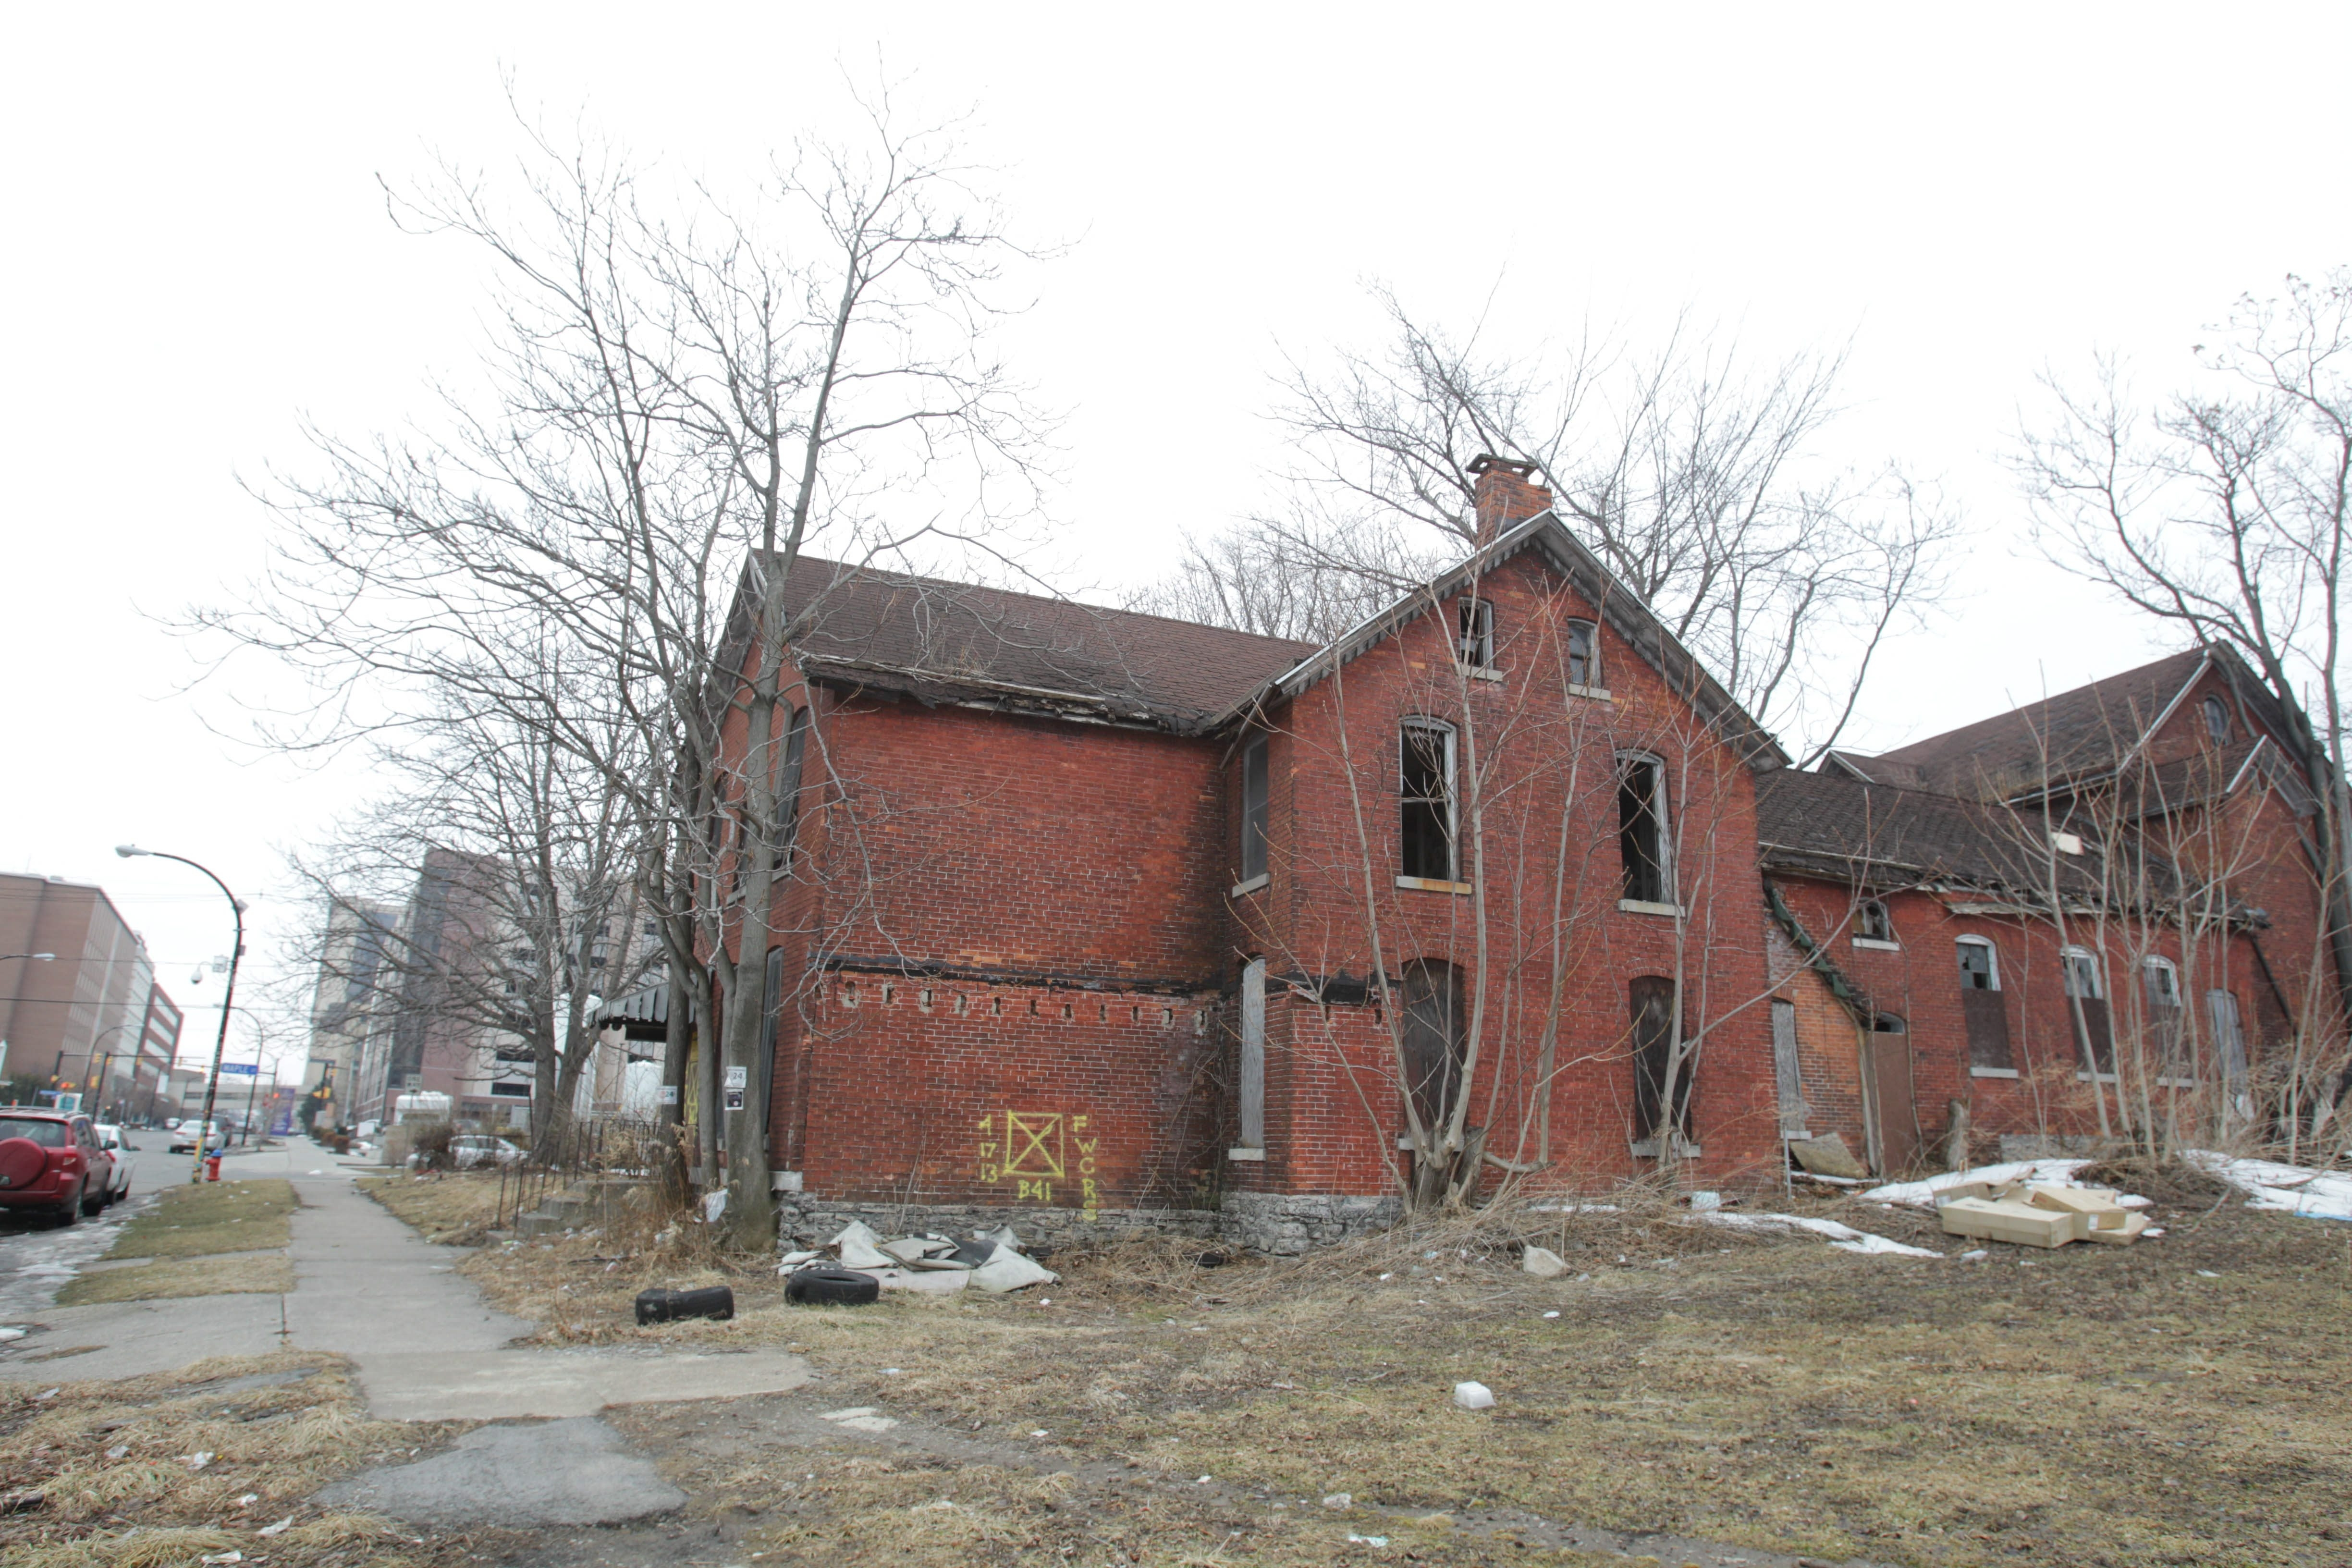 This brick building at 190 High St., built in 1865, will need to be demolished in order to build the Sweet Pea Market.